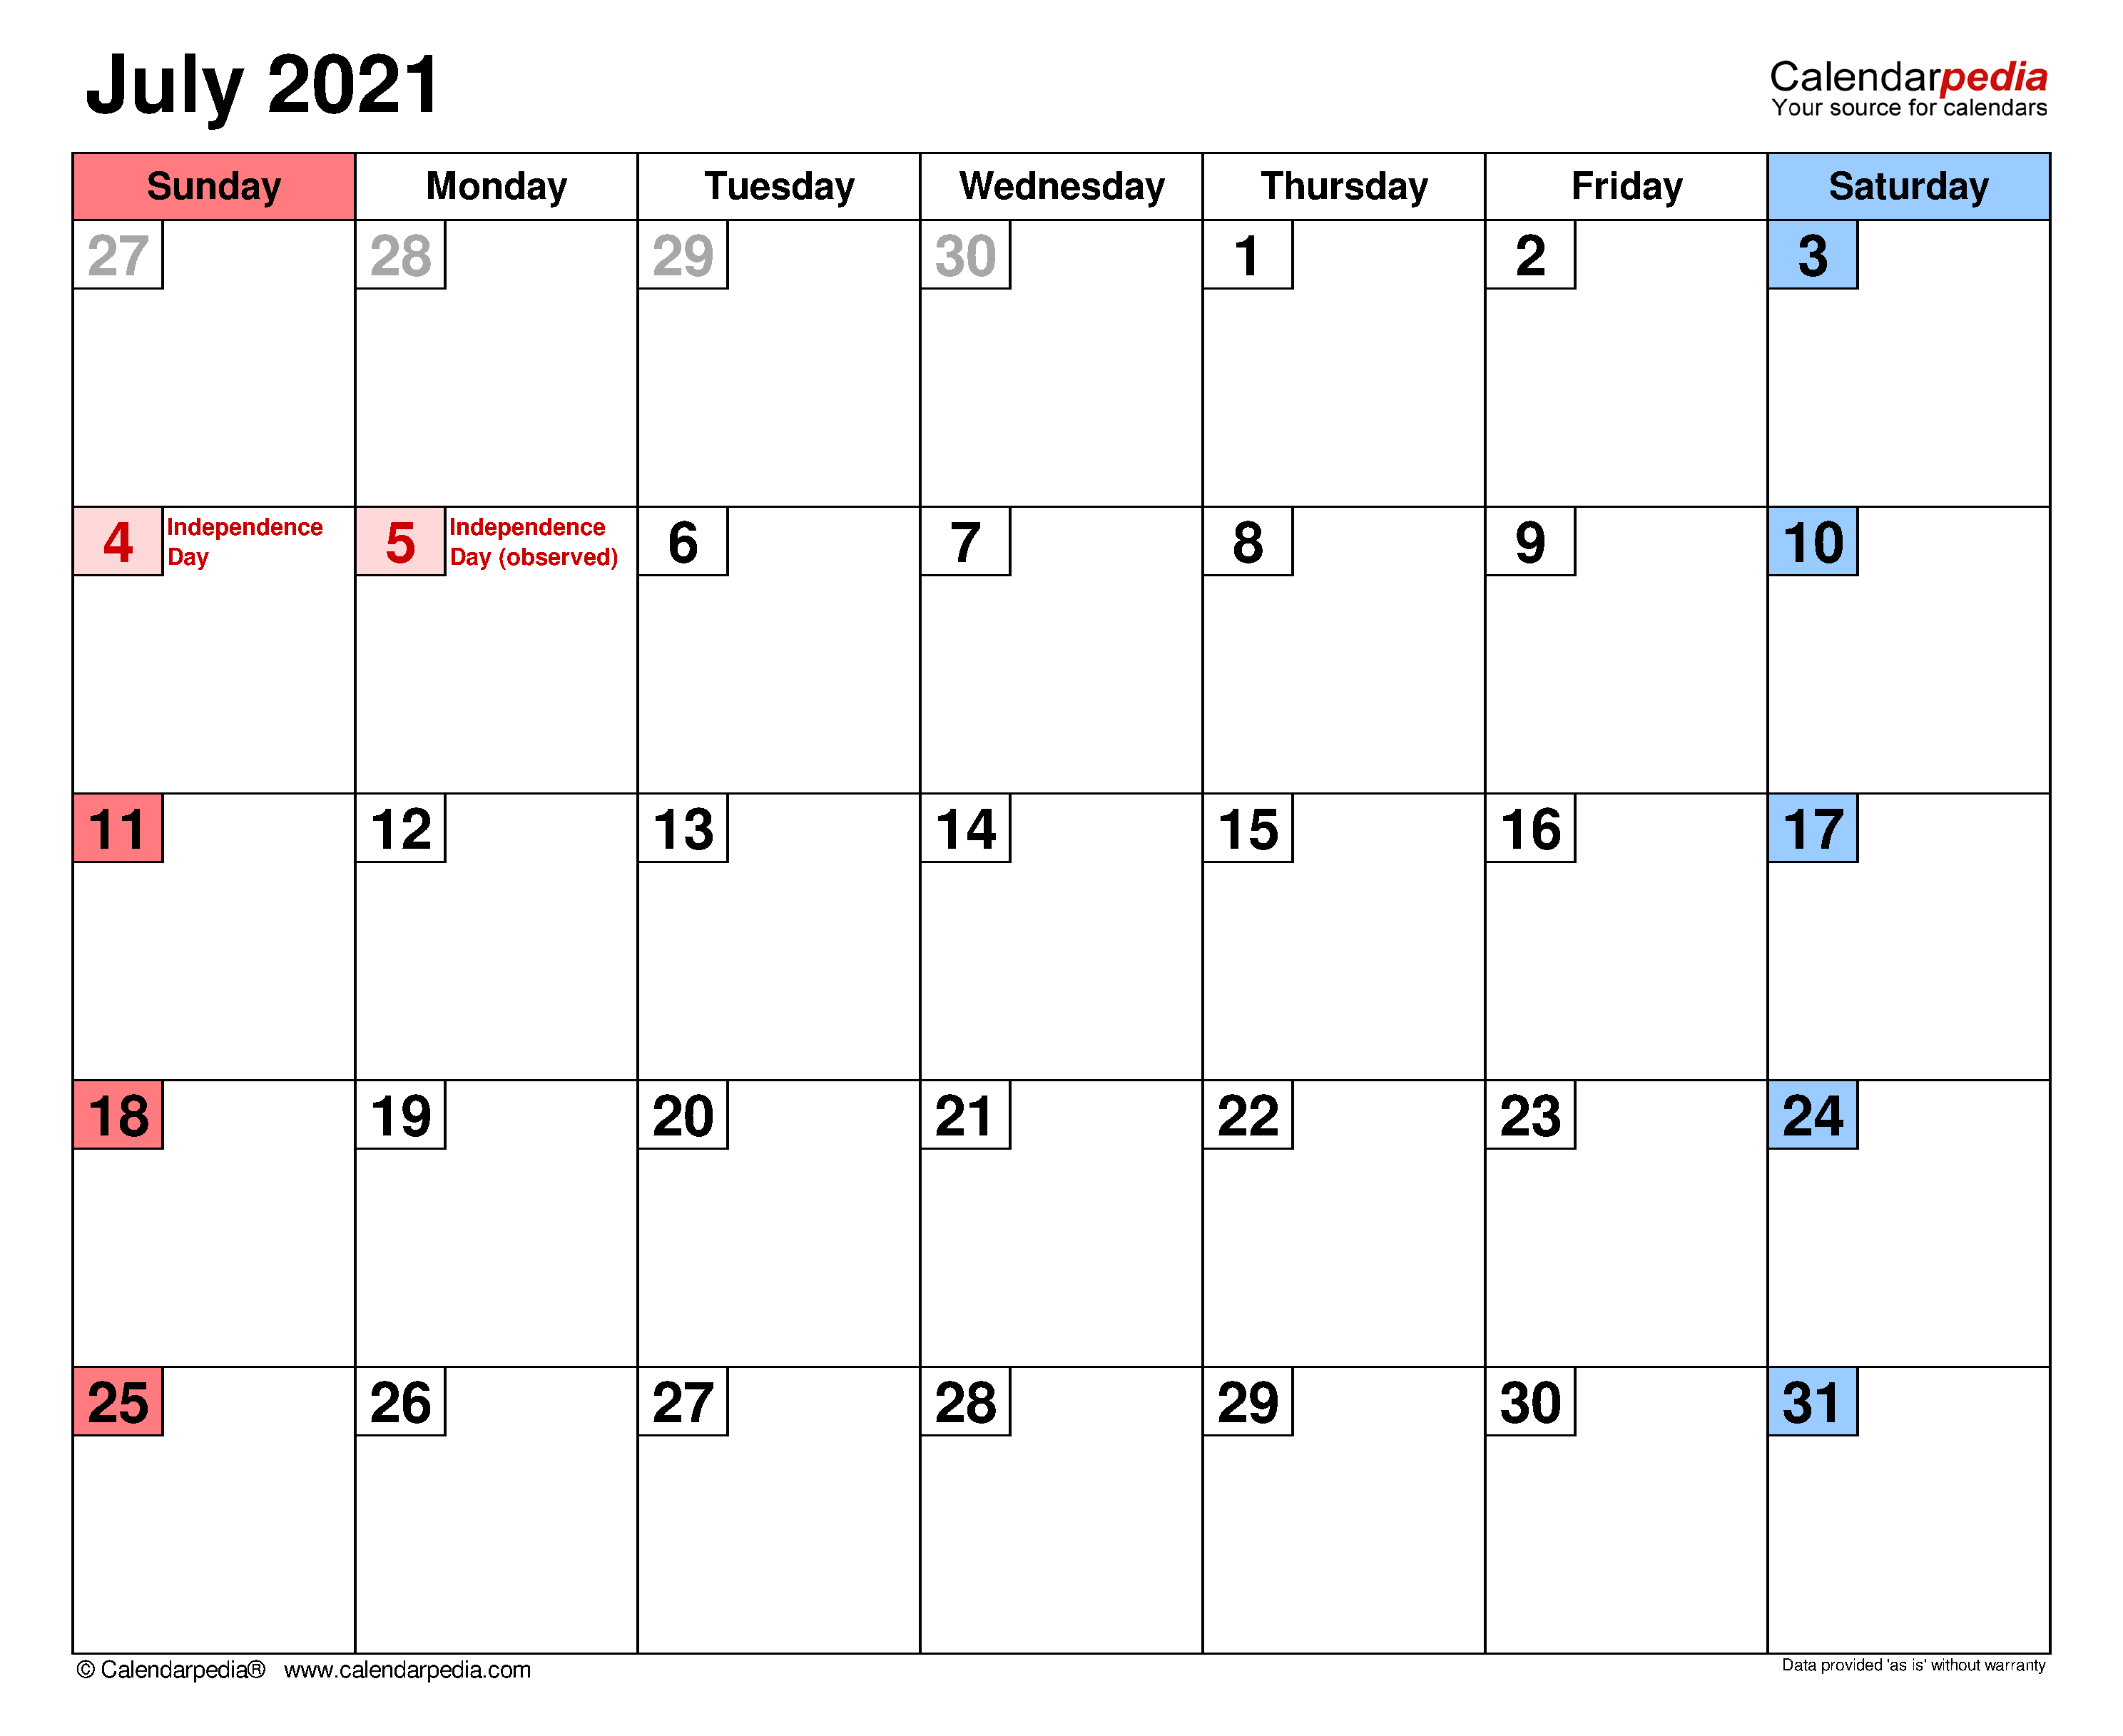 July 2021 - calendar templates for Word, Excel and PDF